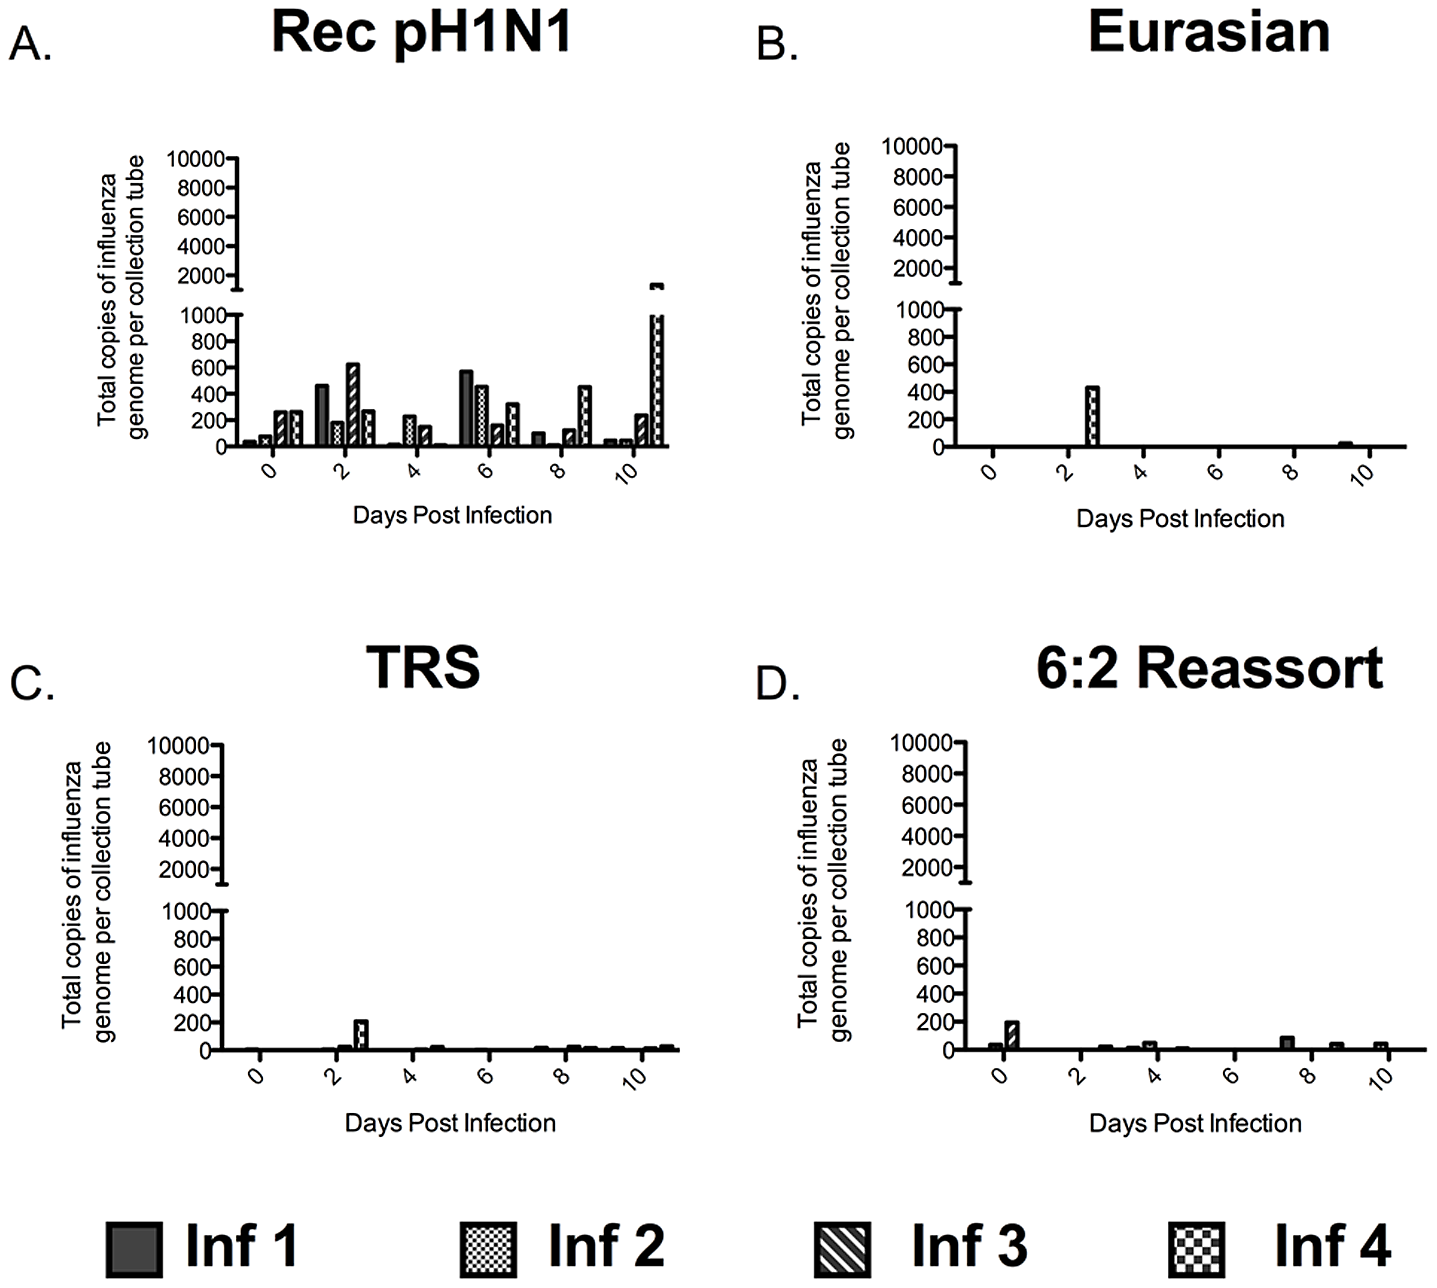 Ferrets infected with the recombinant pH1N1 virus release submicron particles containing influenza virus.